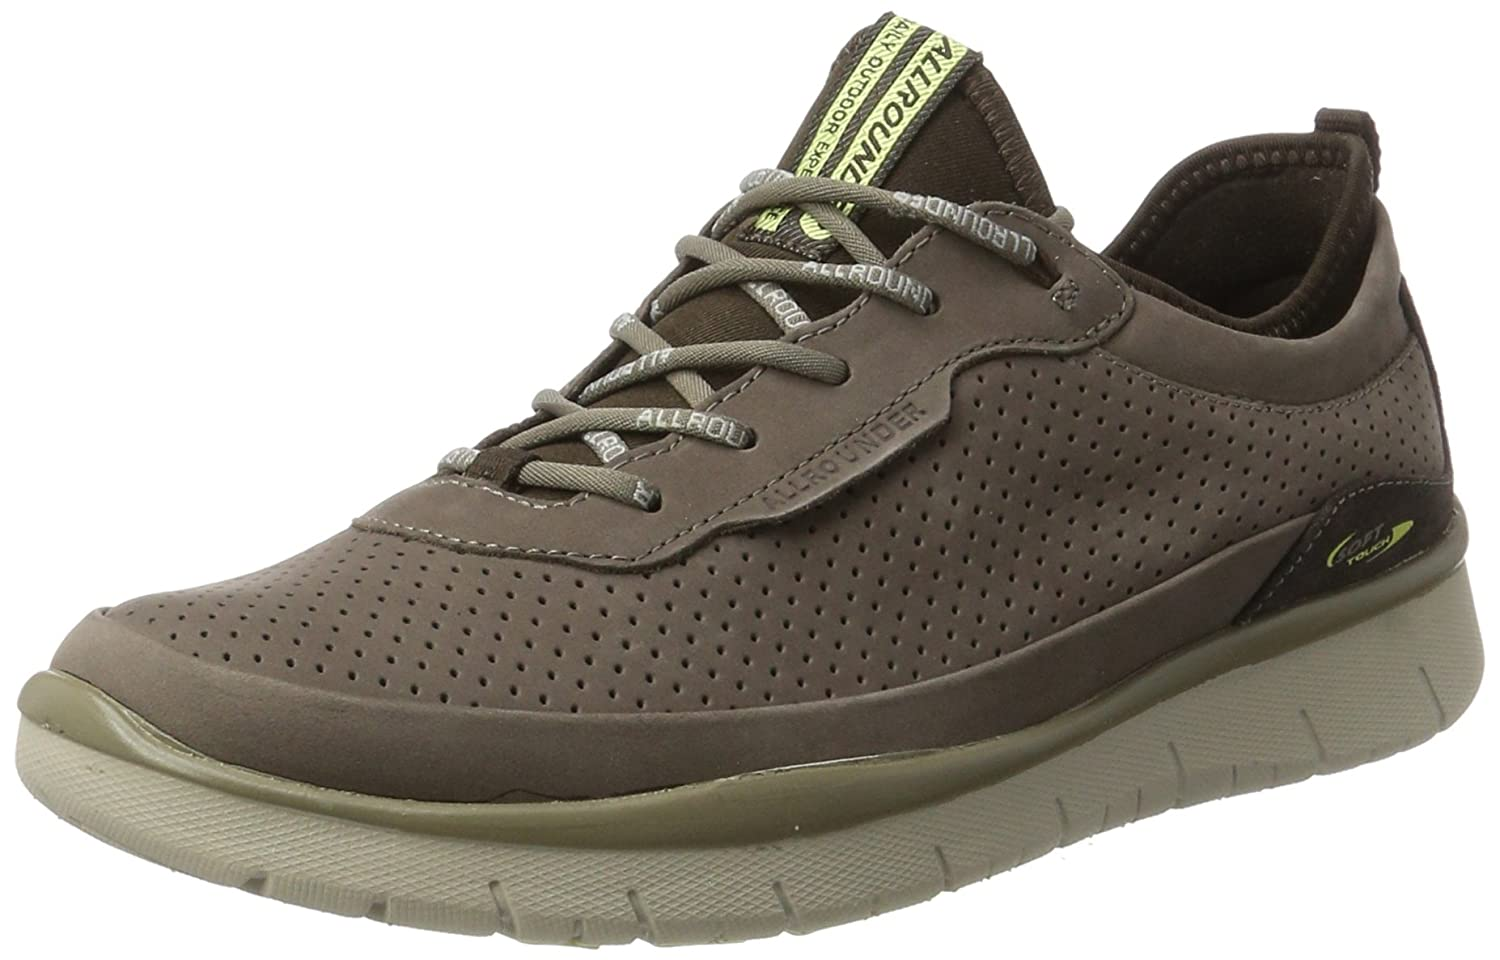 Allrounder by by by Mephisto Herren Maniko Outdoor Fitnessschuhe d0db9b